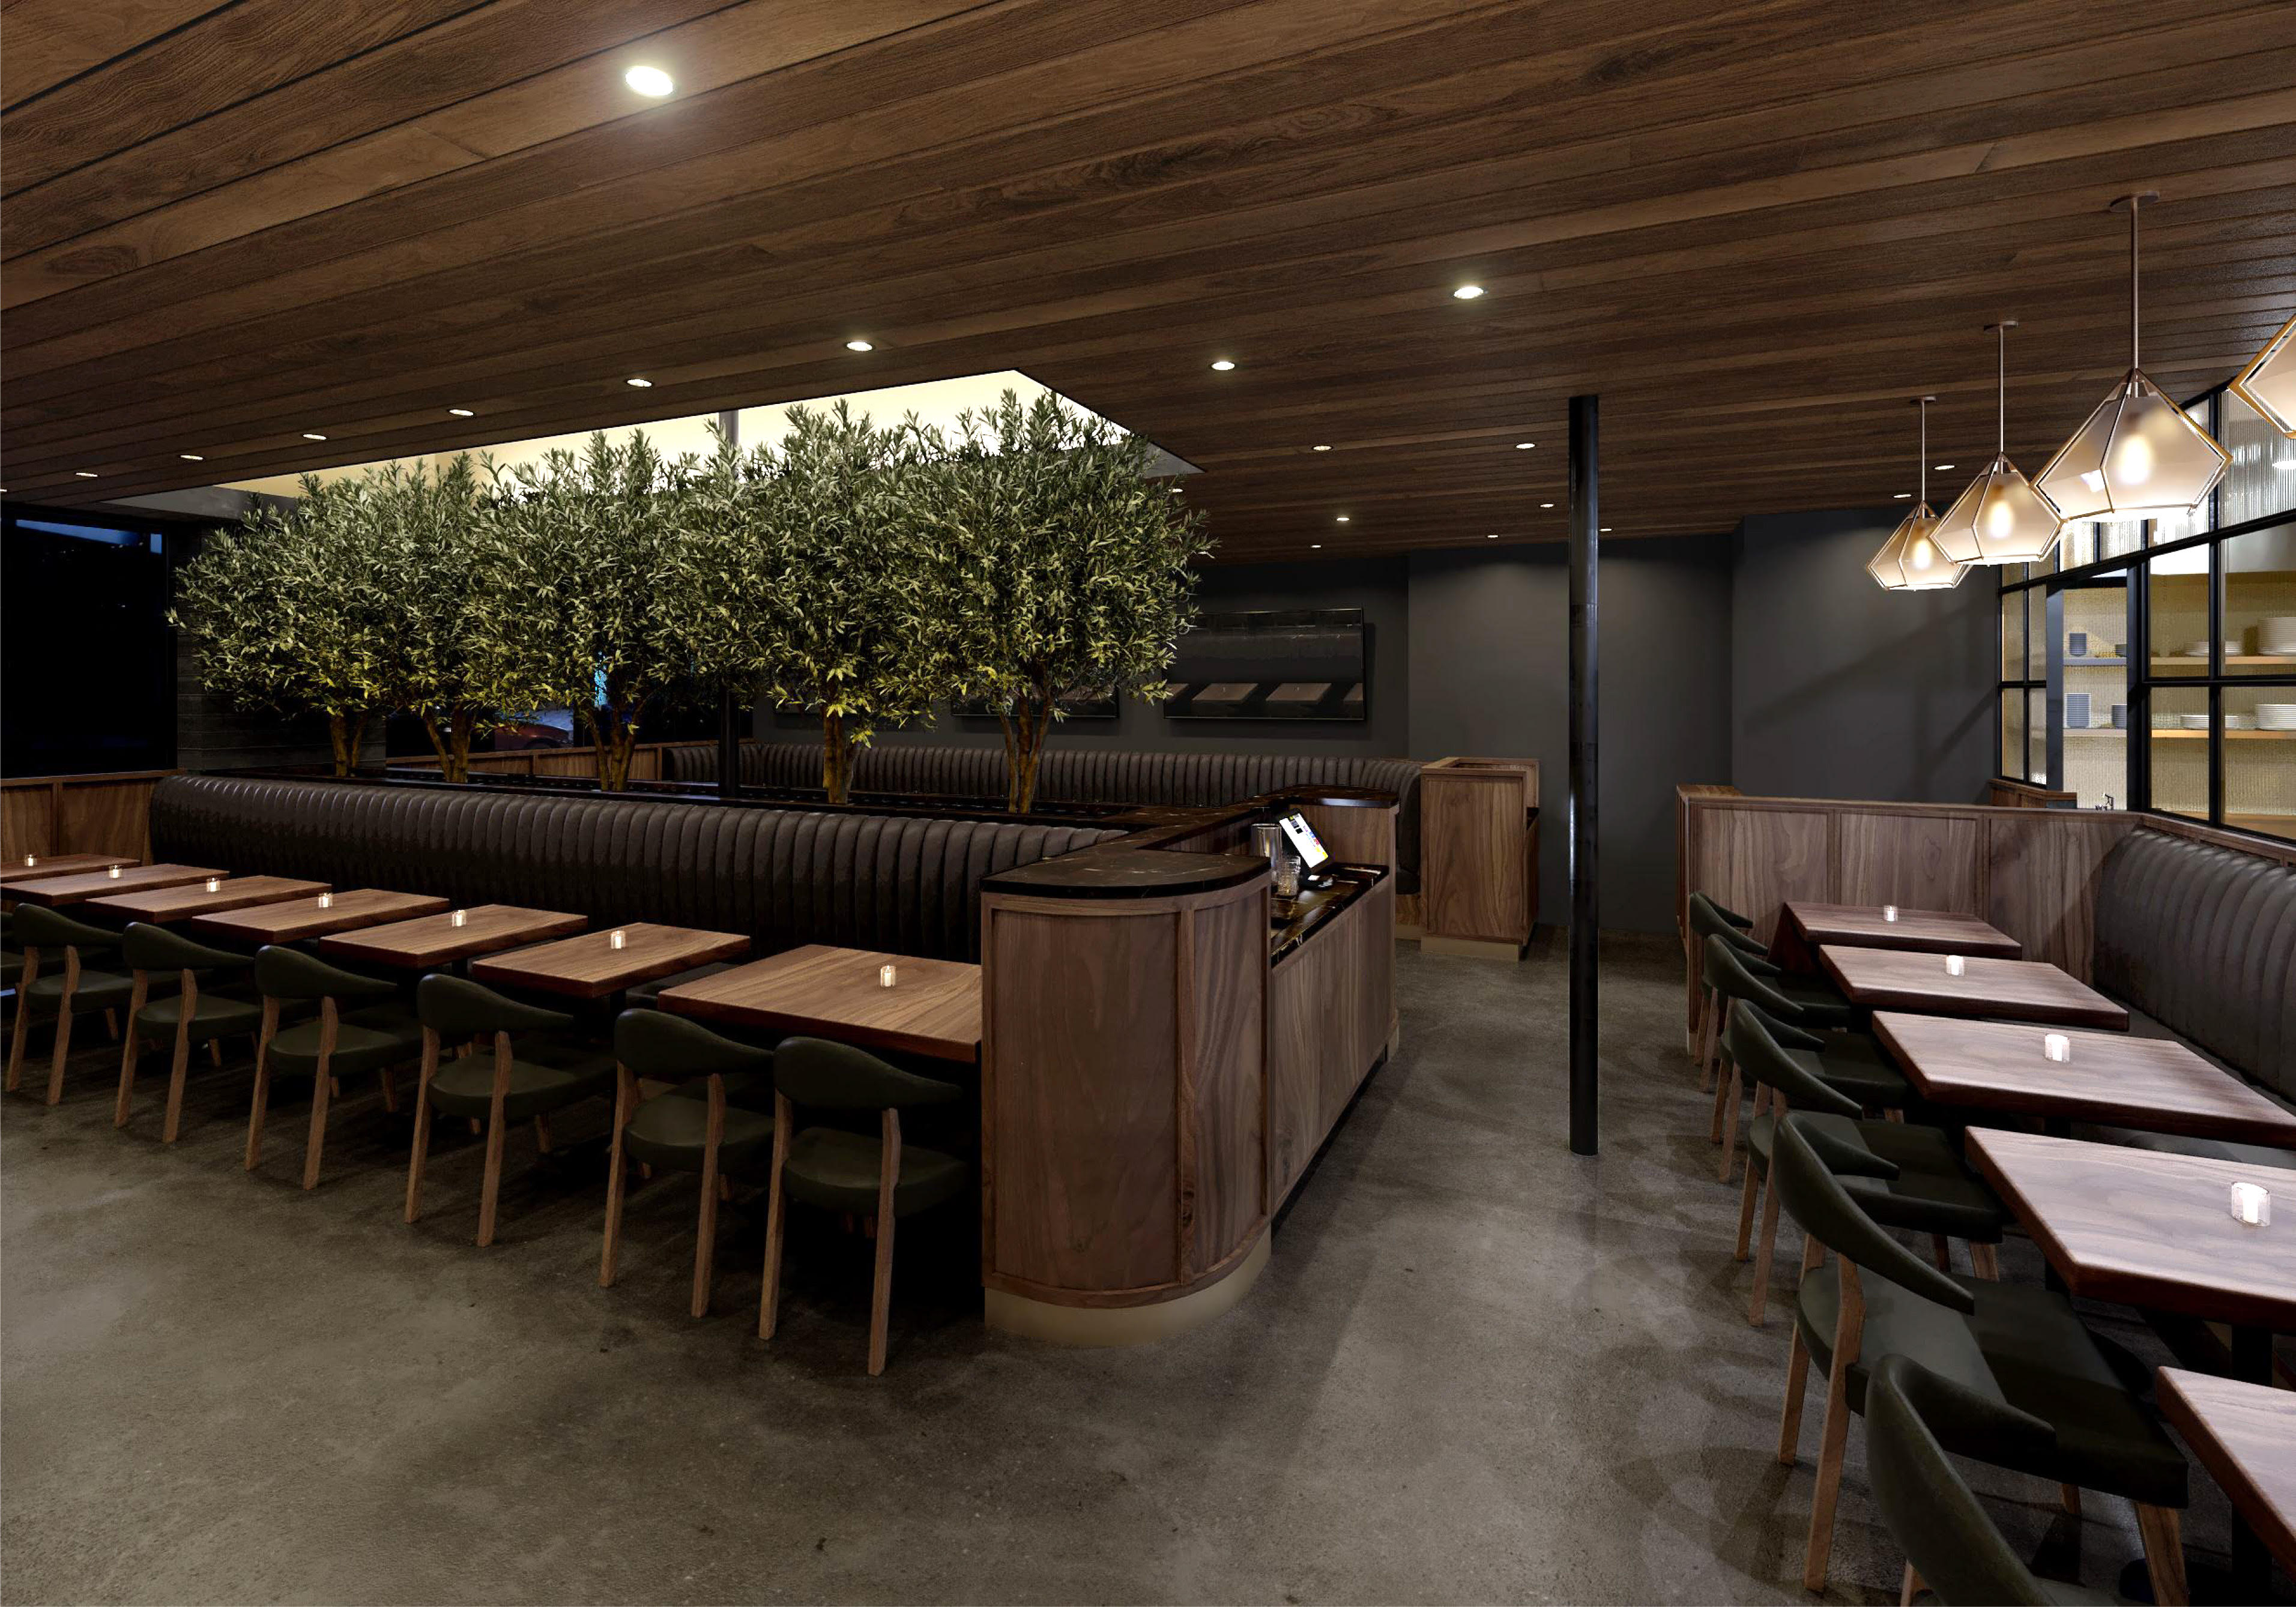 A rendering for a brooding steakhouse with dark booths and lots of wood.